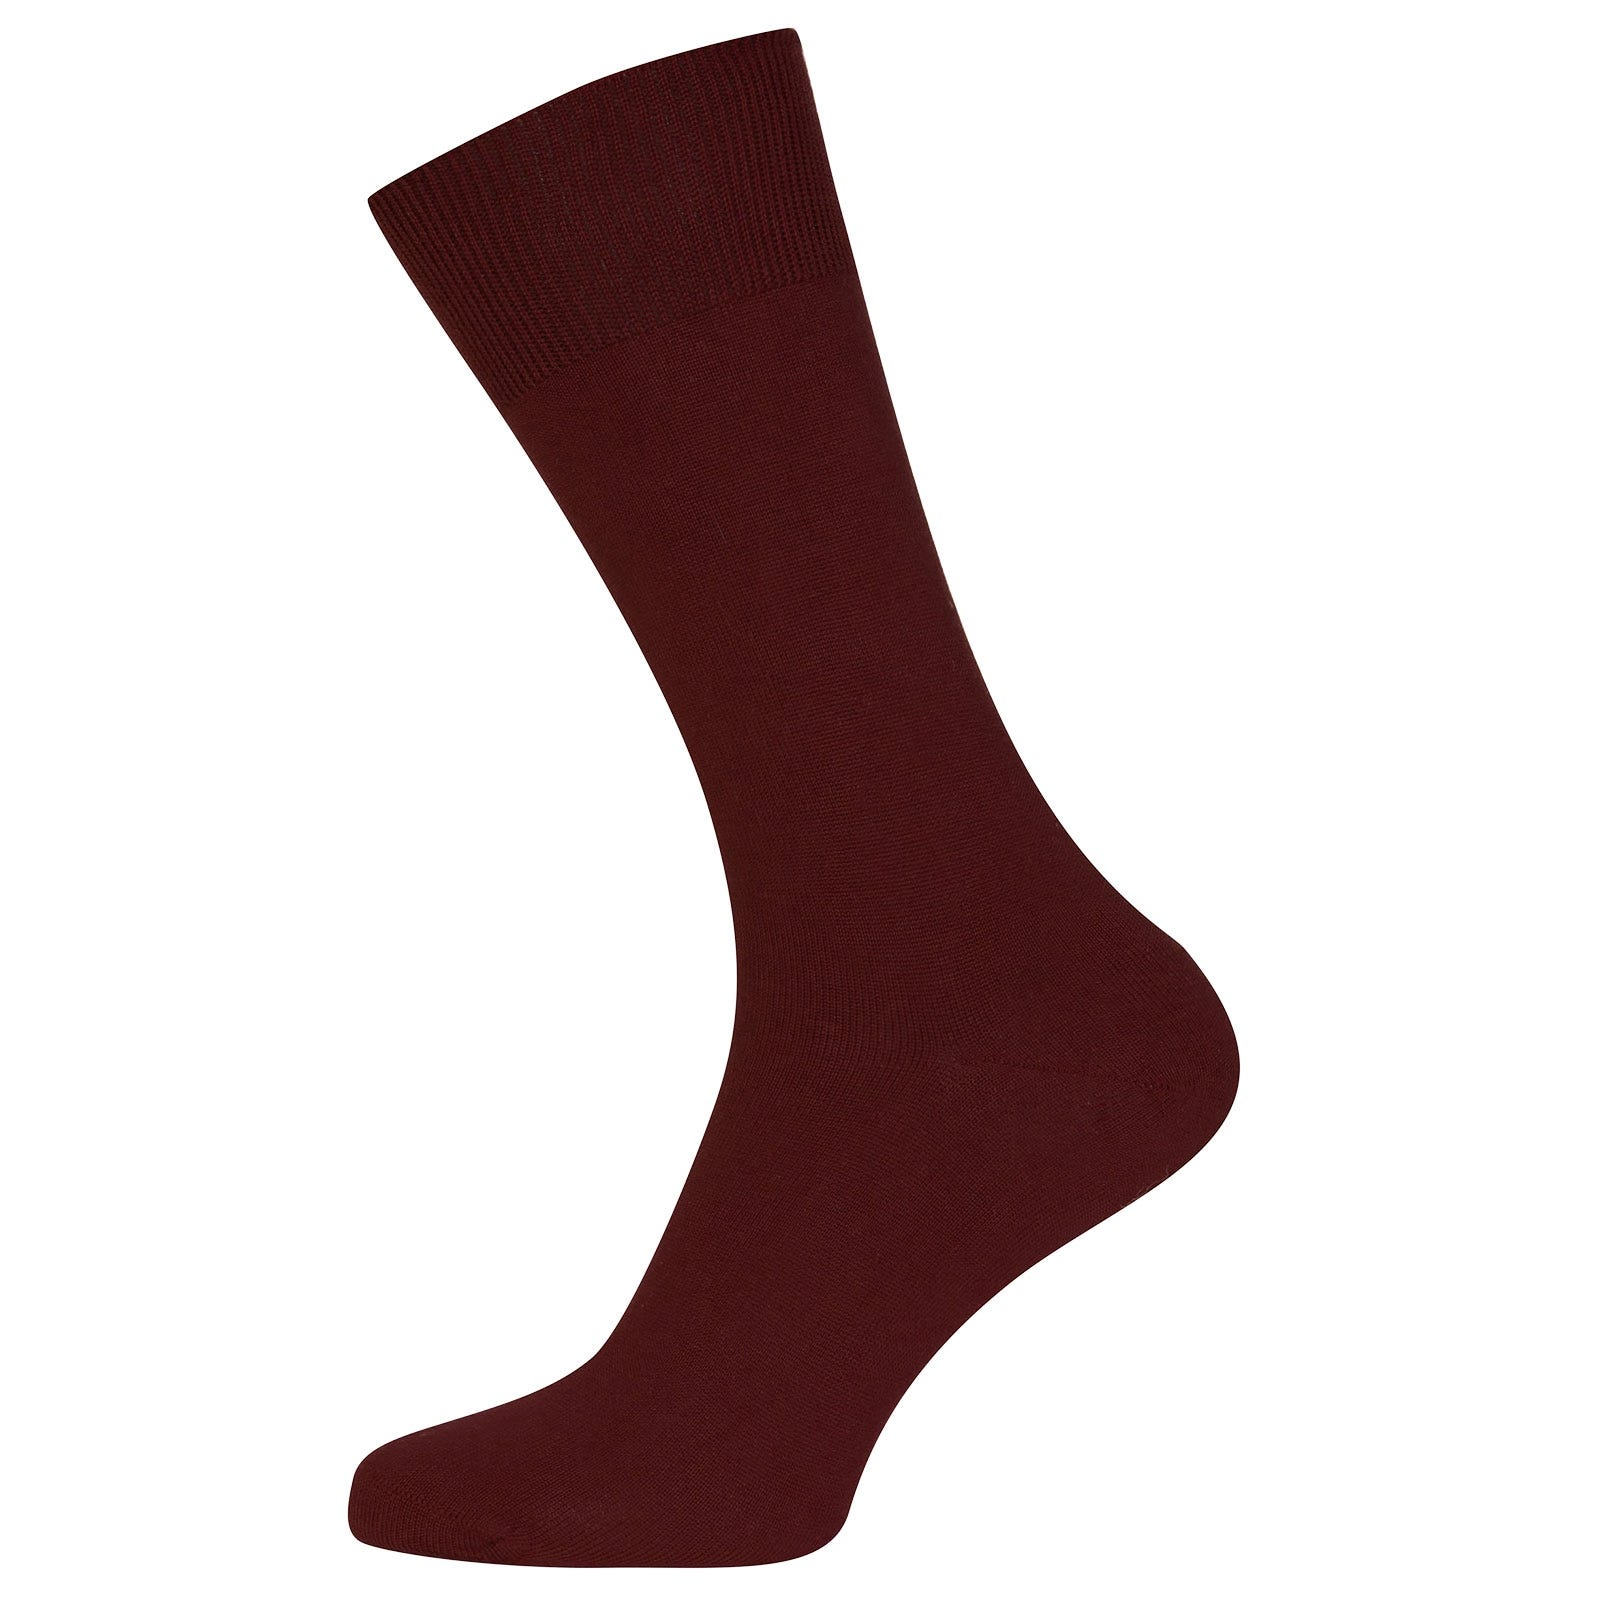 John Smedley Sigma Sea Island Cotton Socks in Burgundy Grain-S/M